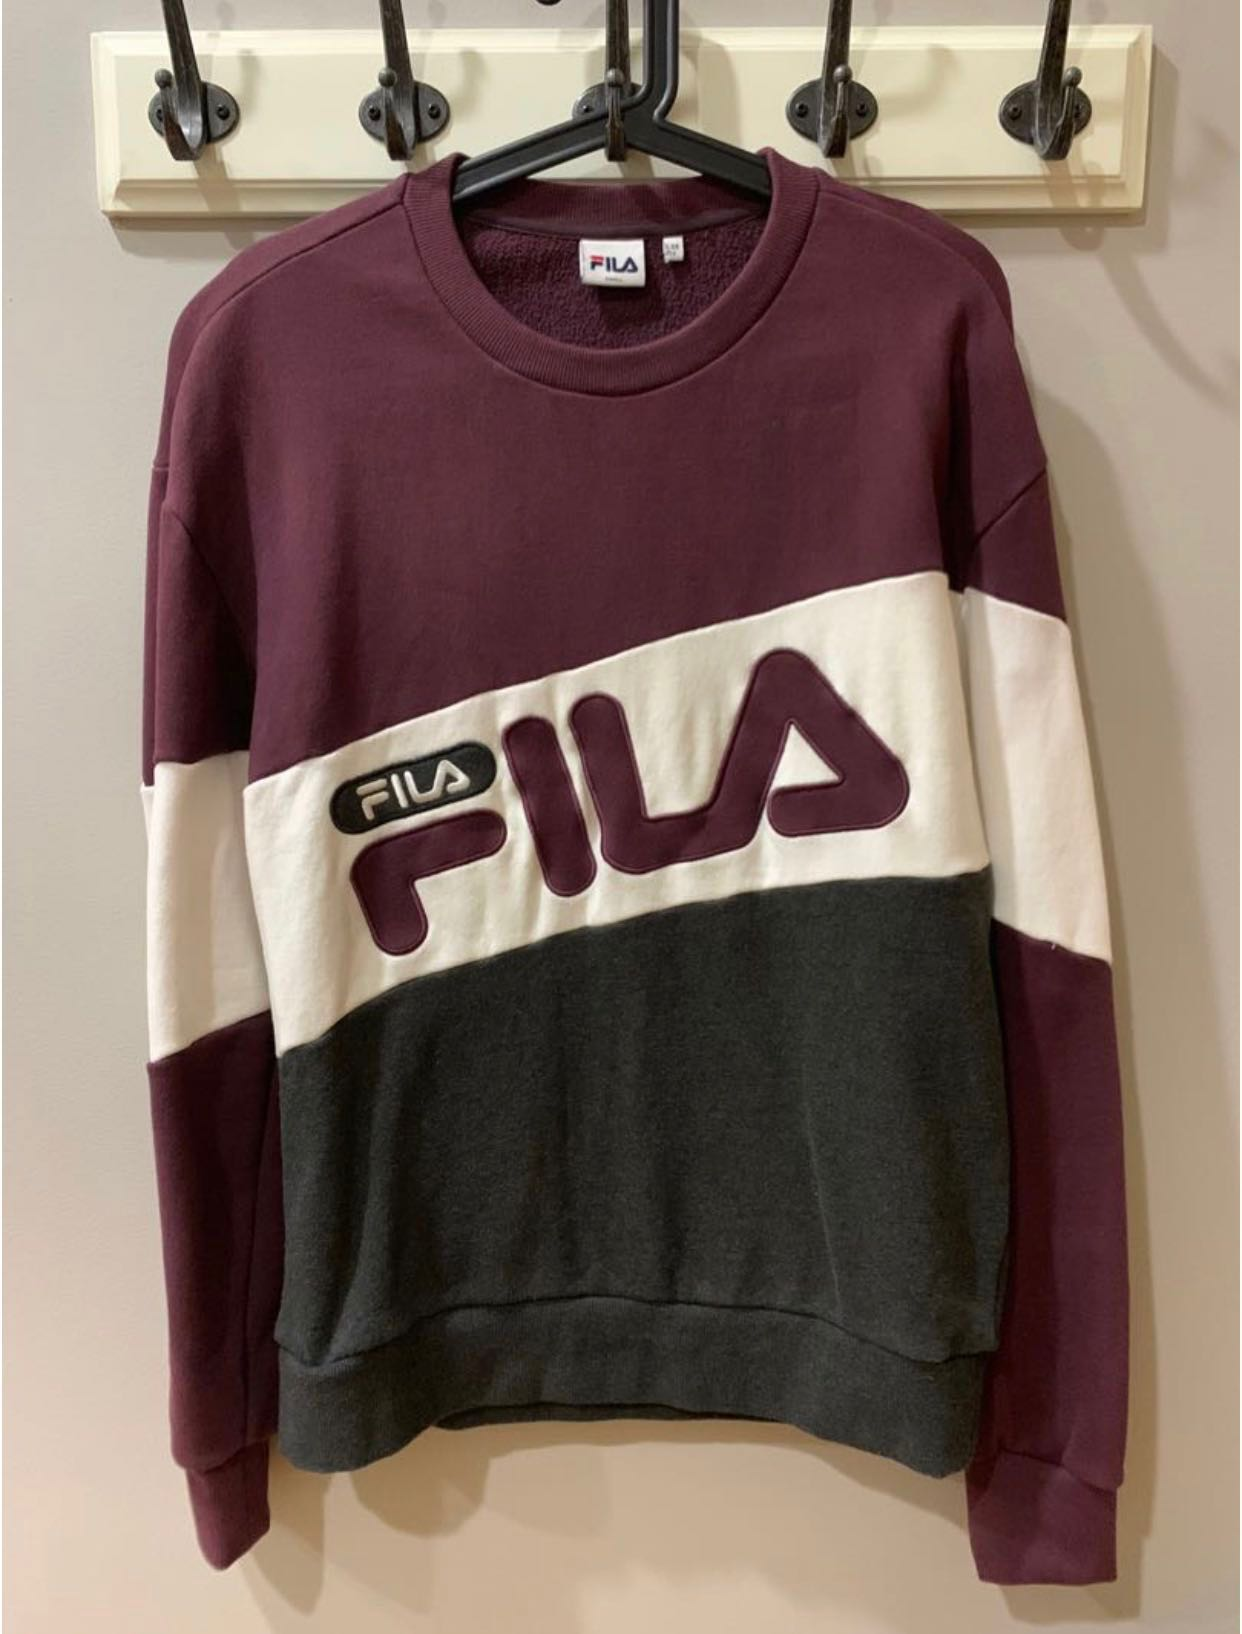 a06fc06502a8 100% AUTHENTIC FILA MAROON OVERSIZED SWEATER, Women's Fashion ...